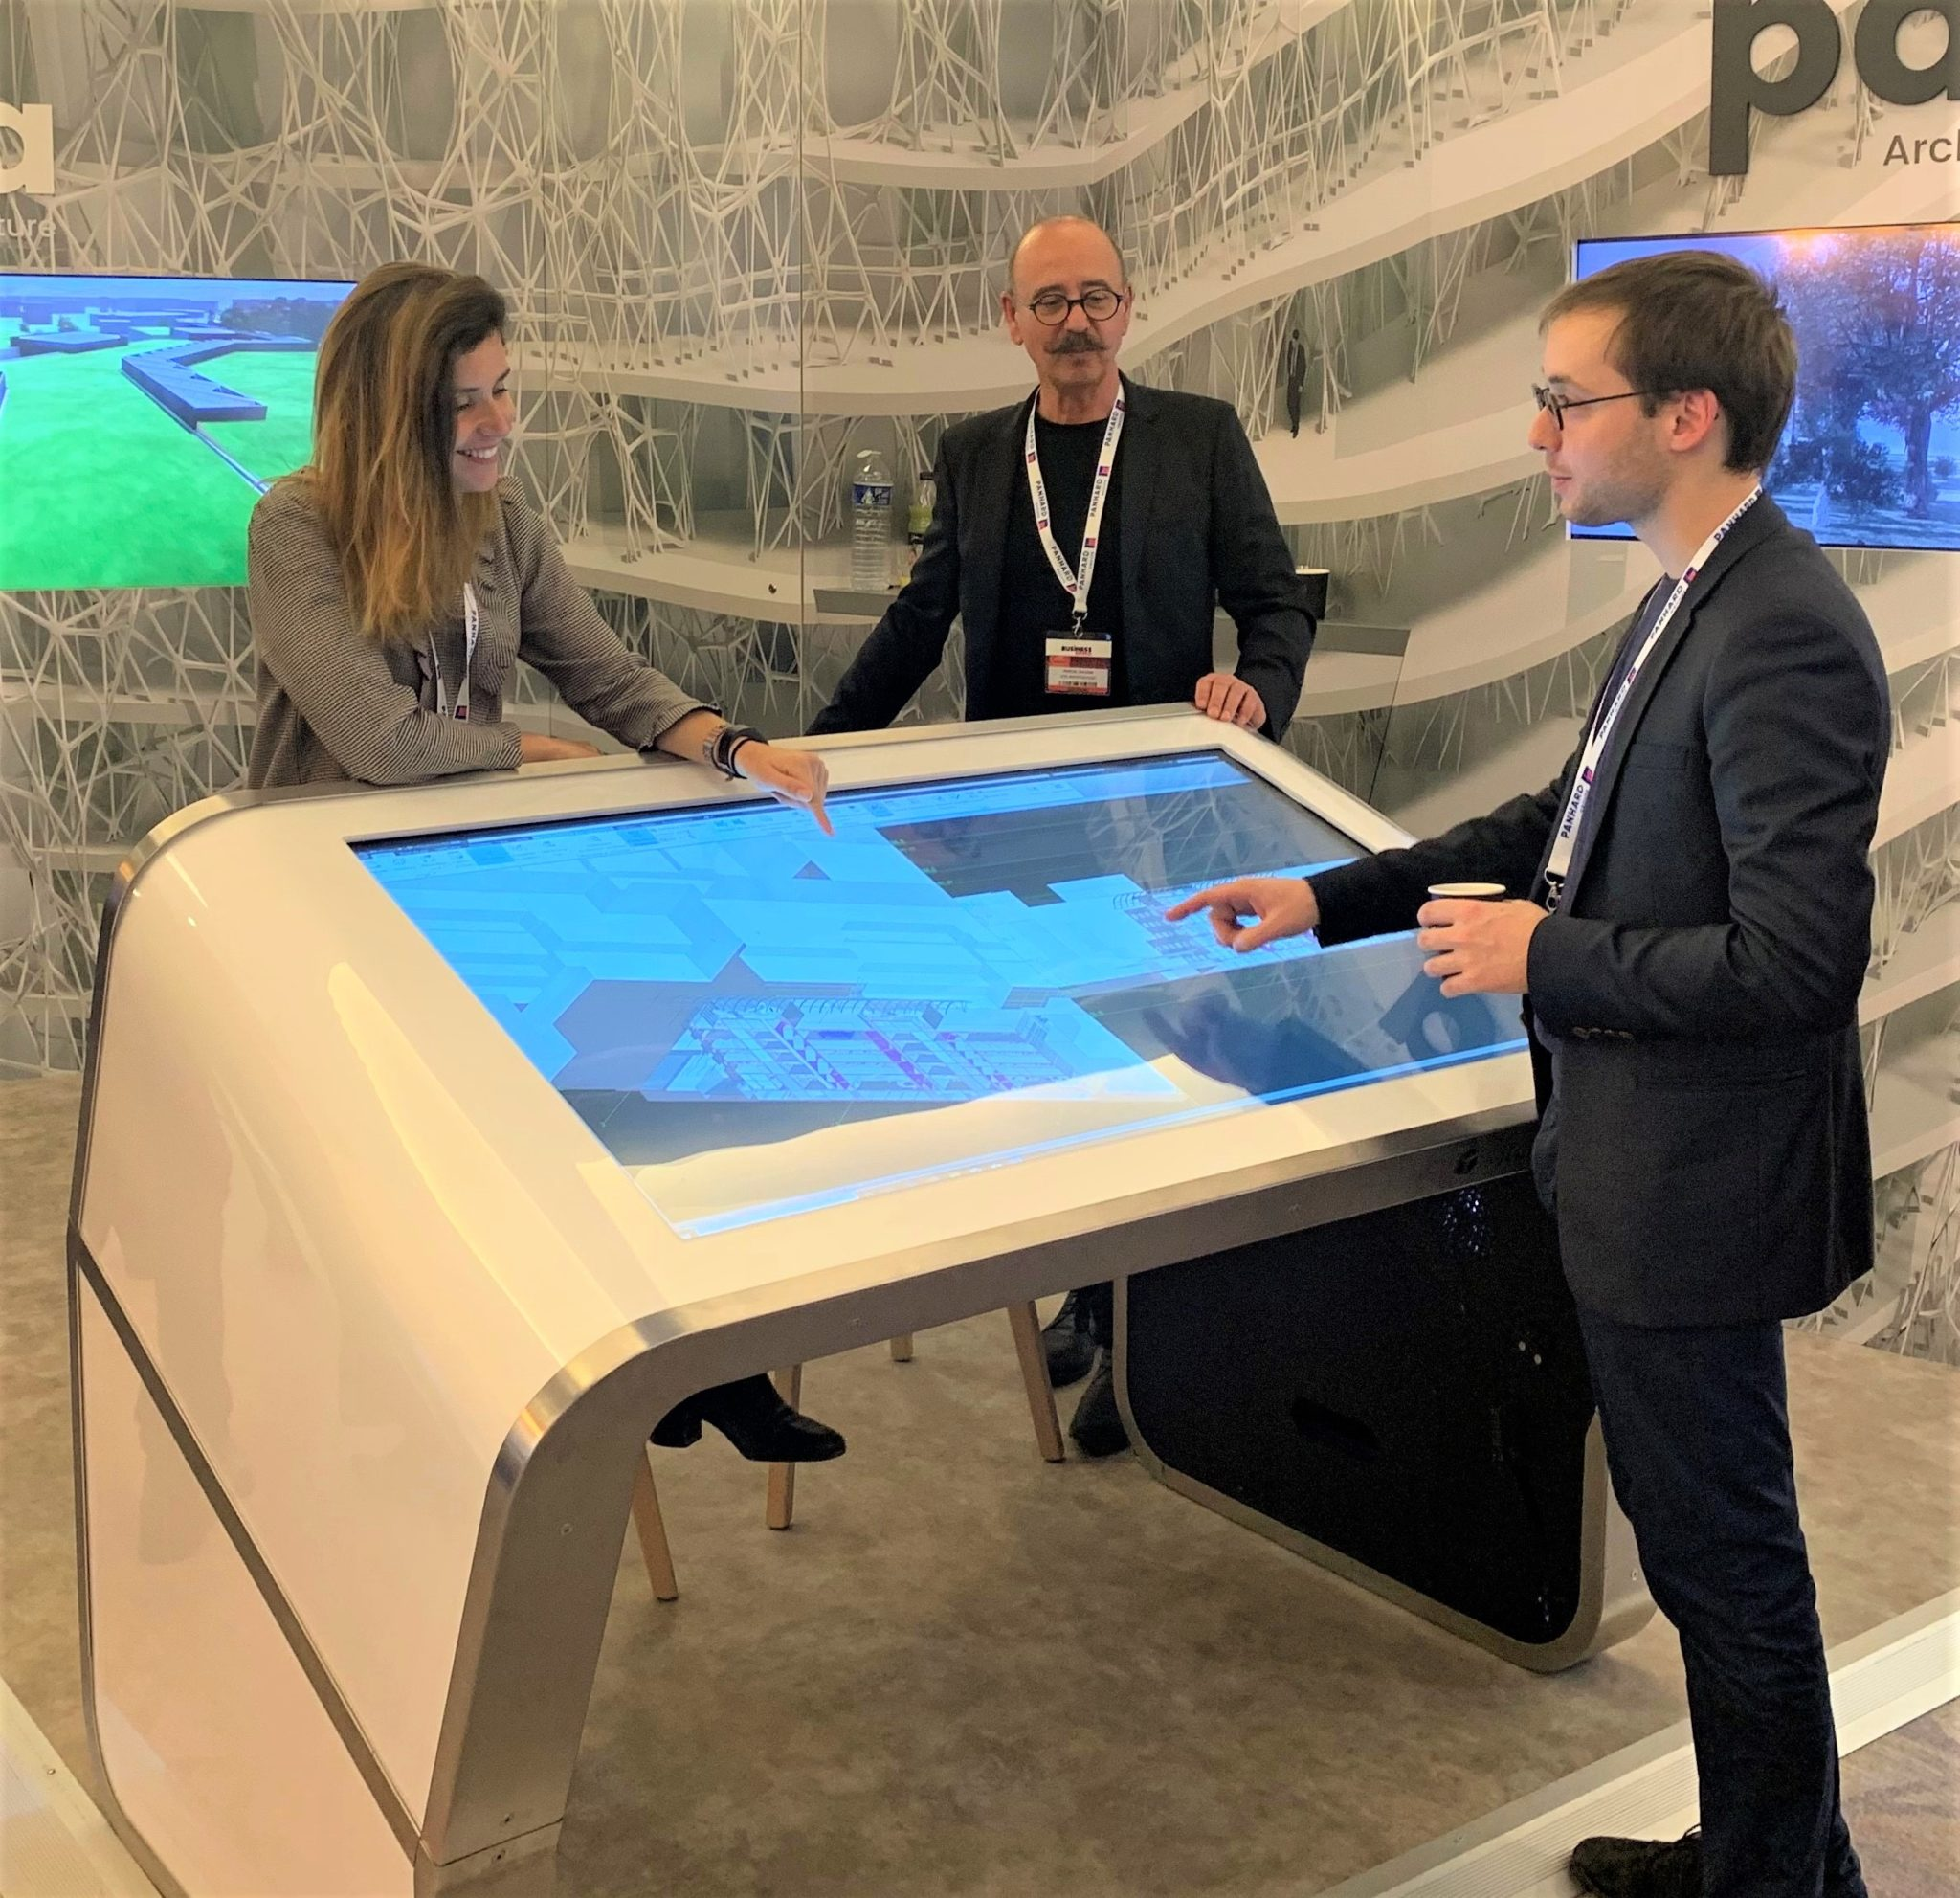 Une table tactile interactive Modèle E incliné au SIMI 2019